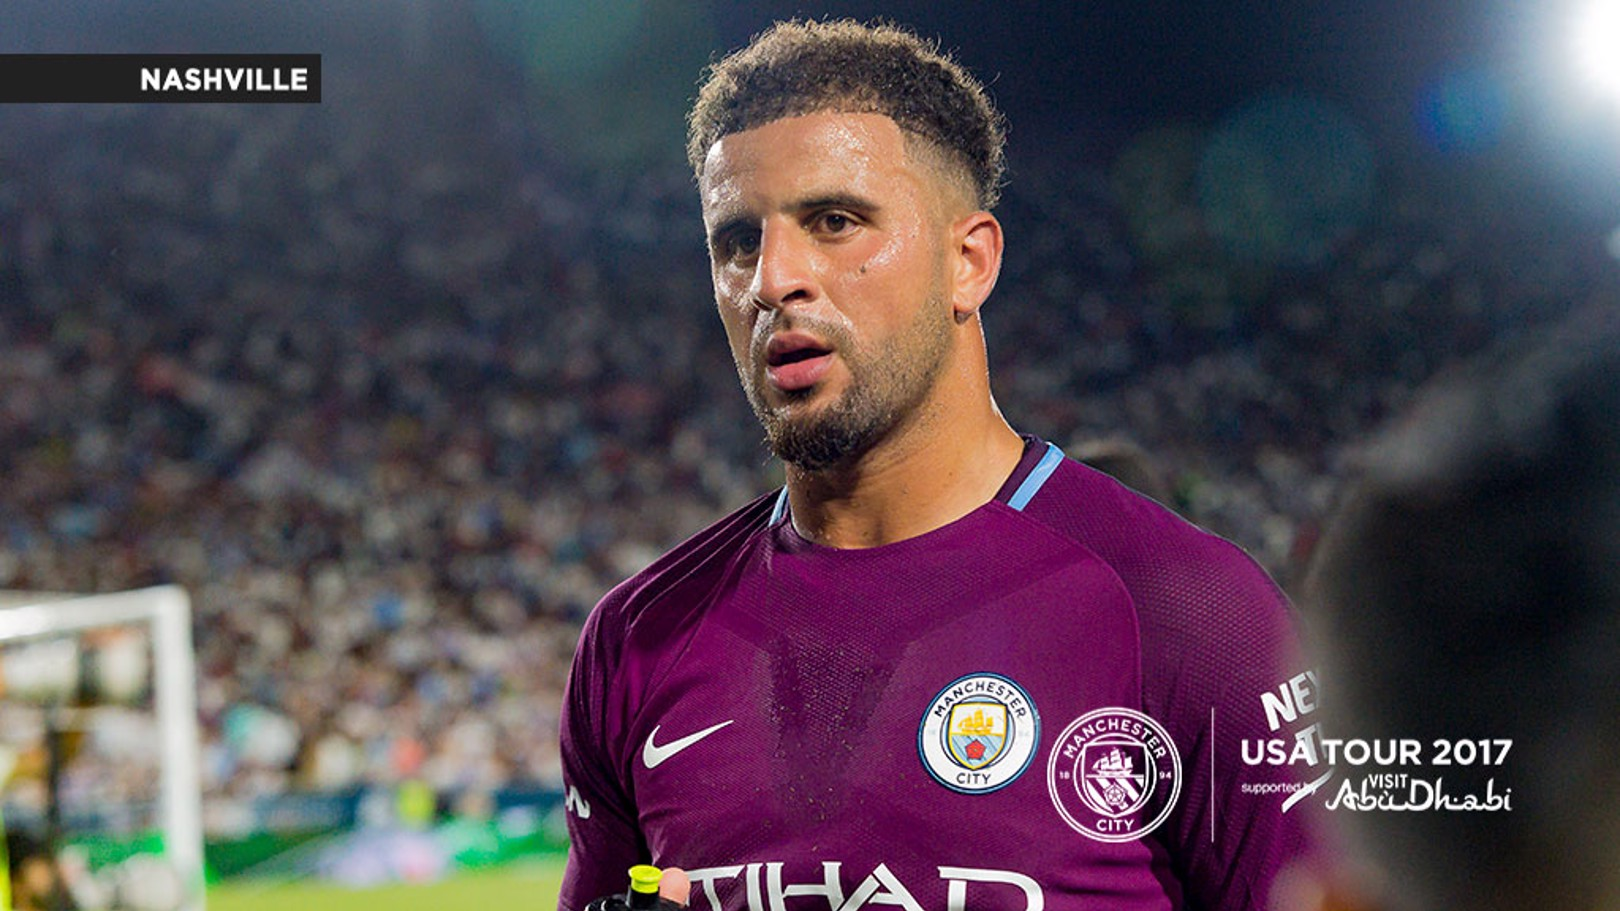 SUMMER SIGNING: Walker spent eight years at Spurs before sealing his move to City earlier in July.